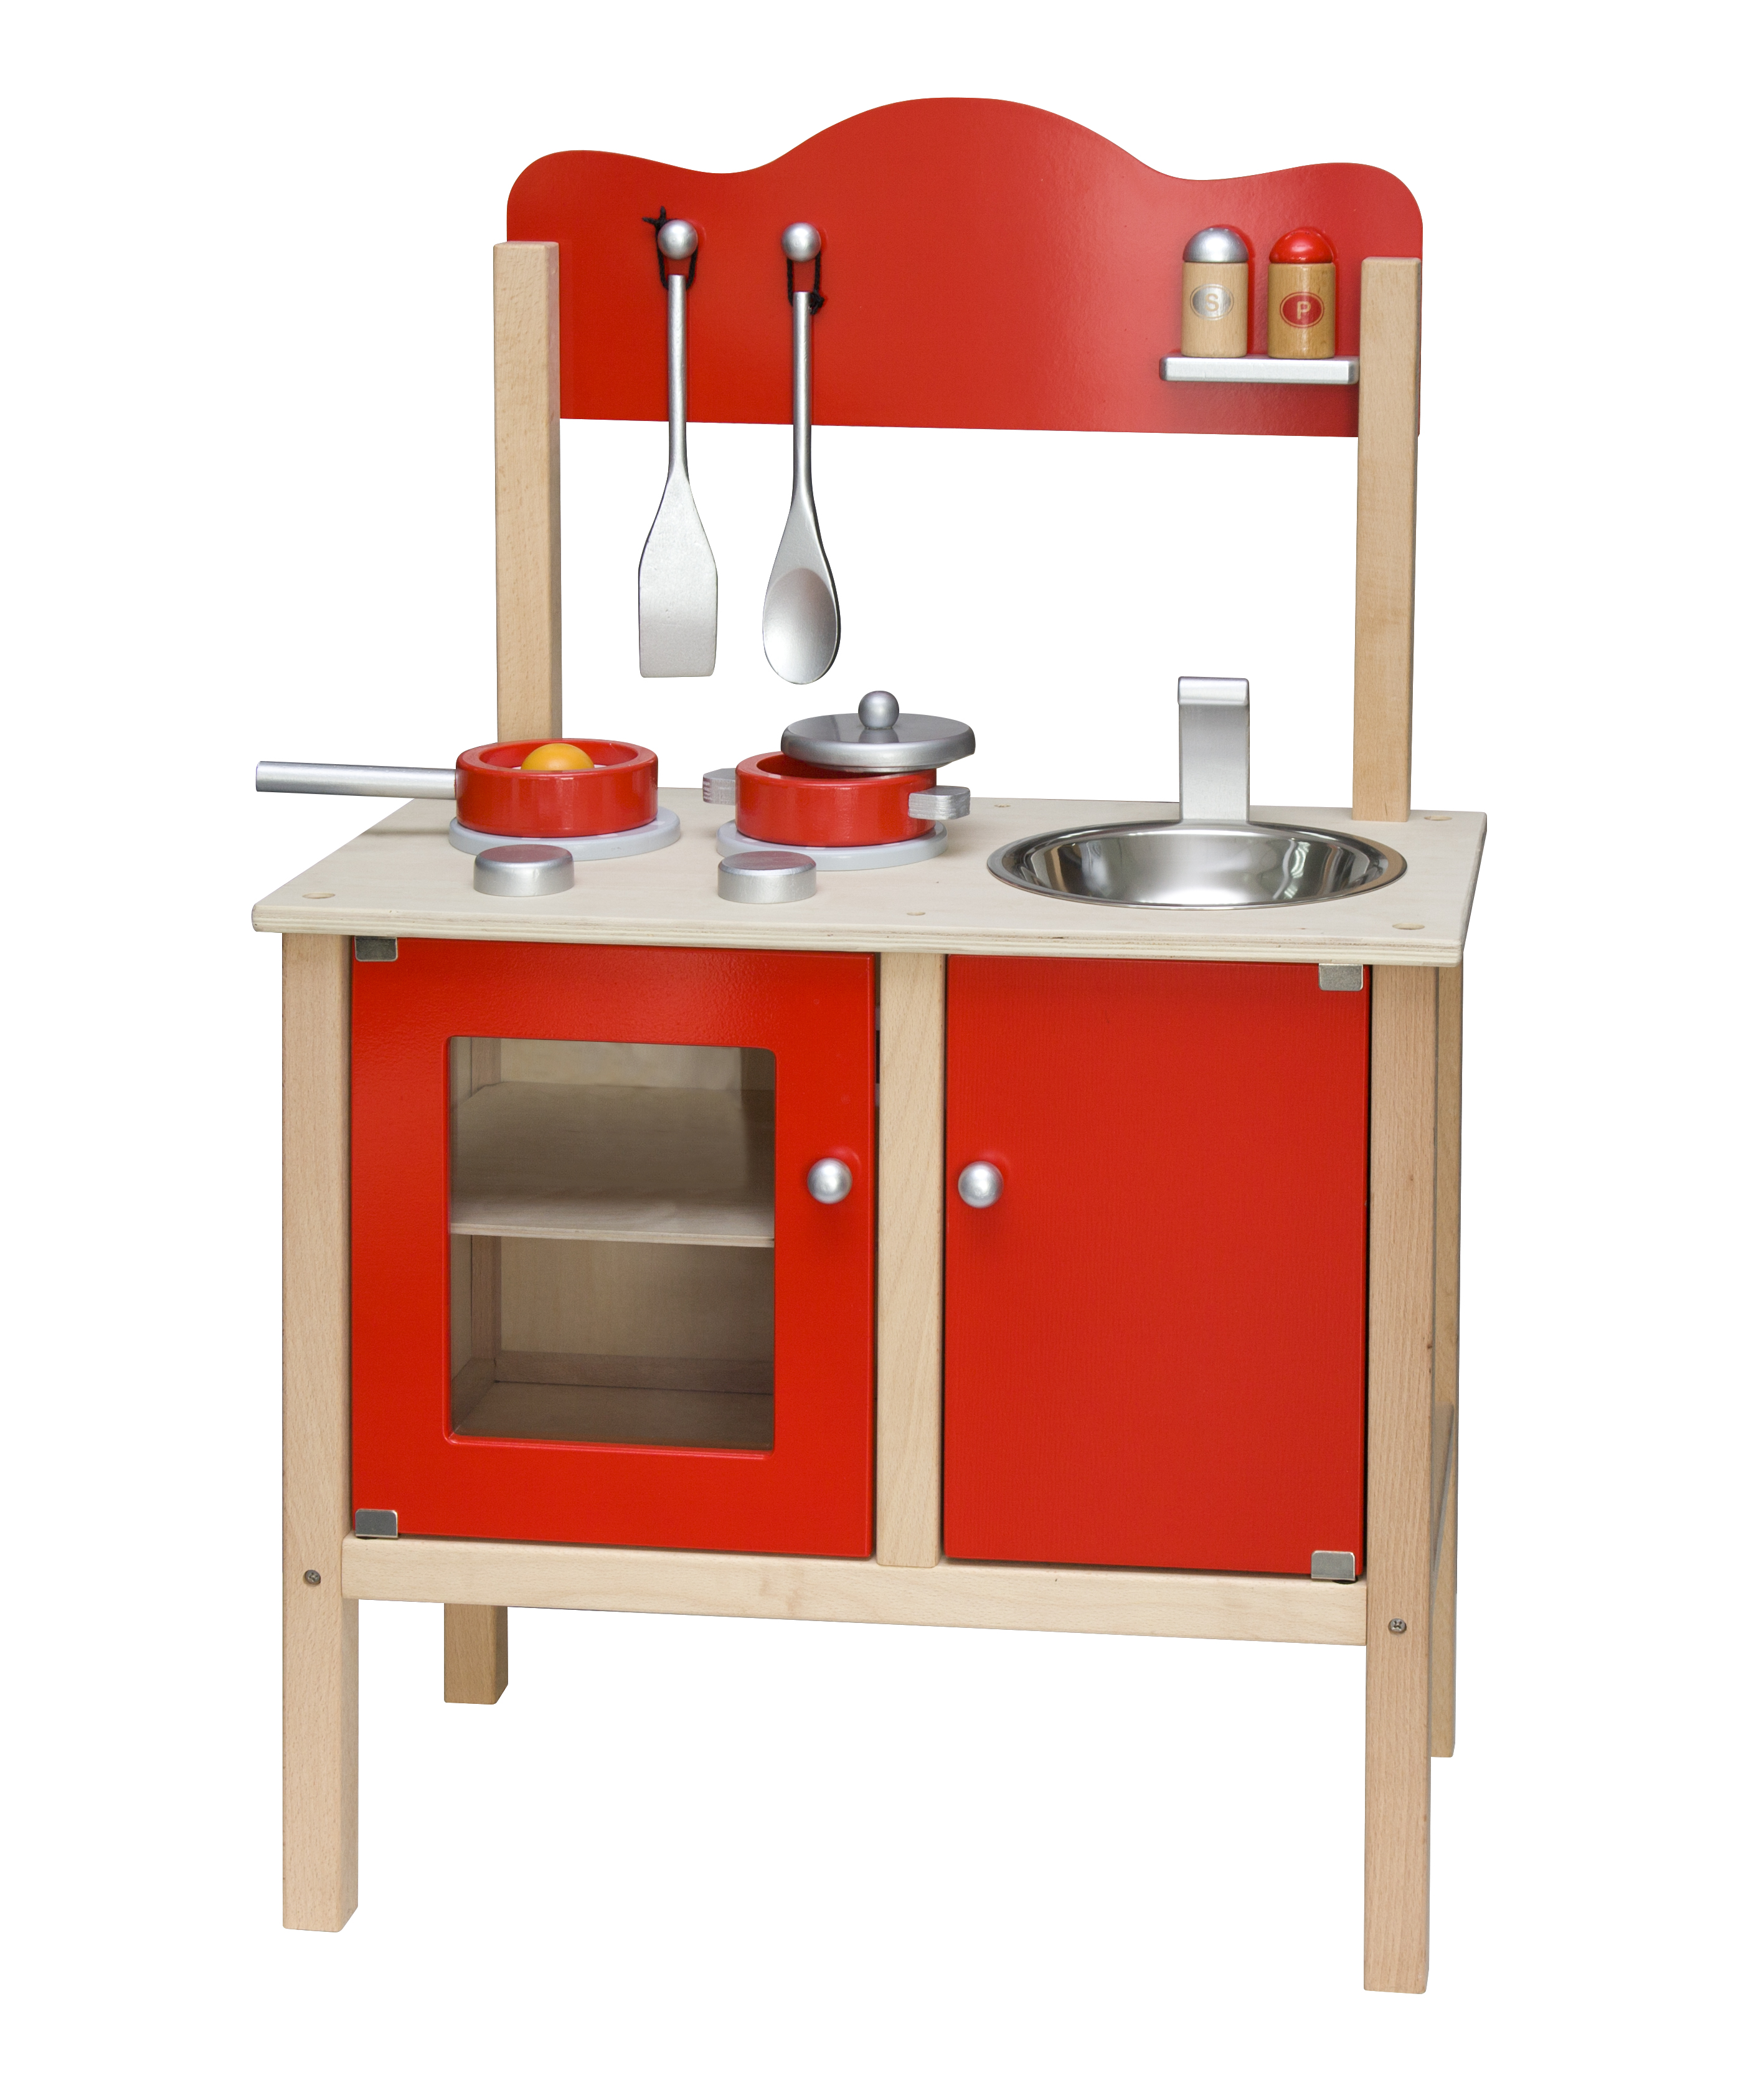 viga toys noble wooden kitchen with accessories